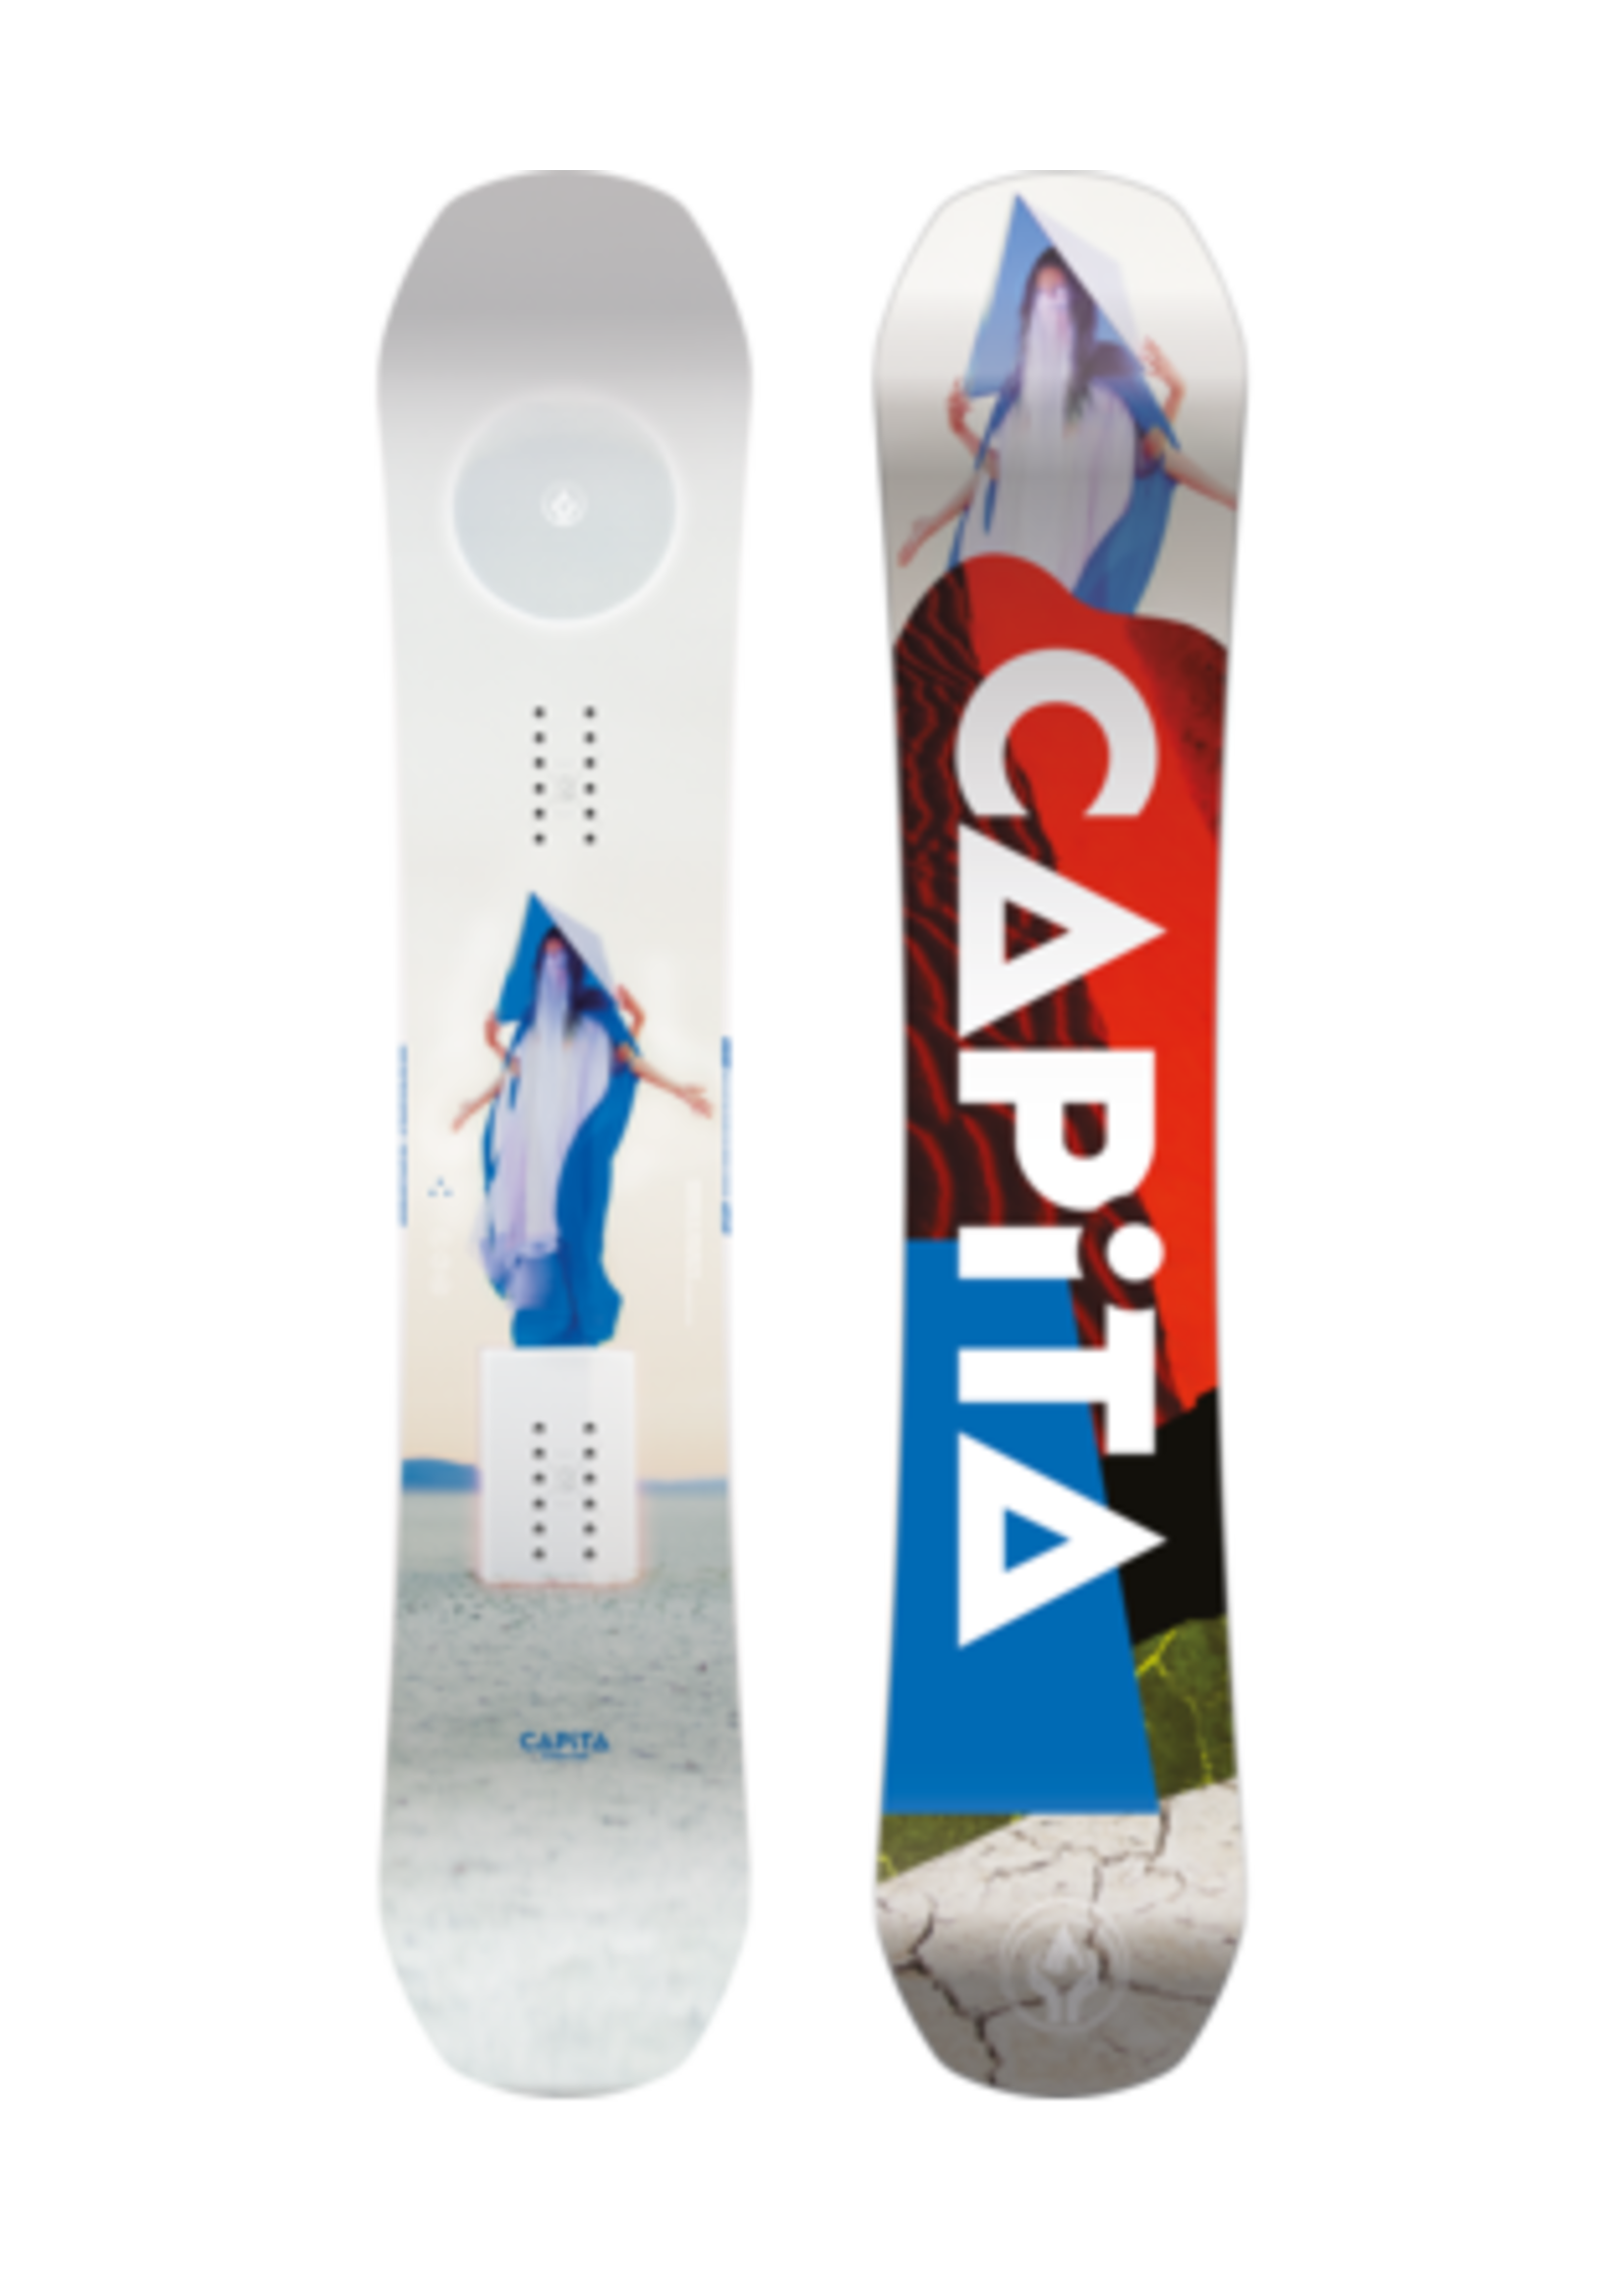 Capita CAPITA DEFENDERS OF AWESOME WIDE 20/21